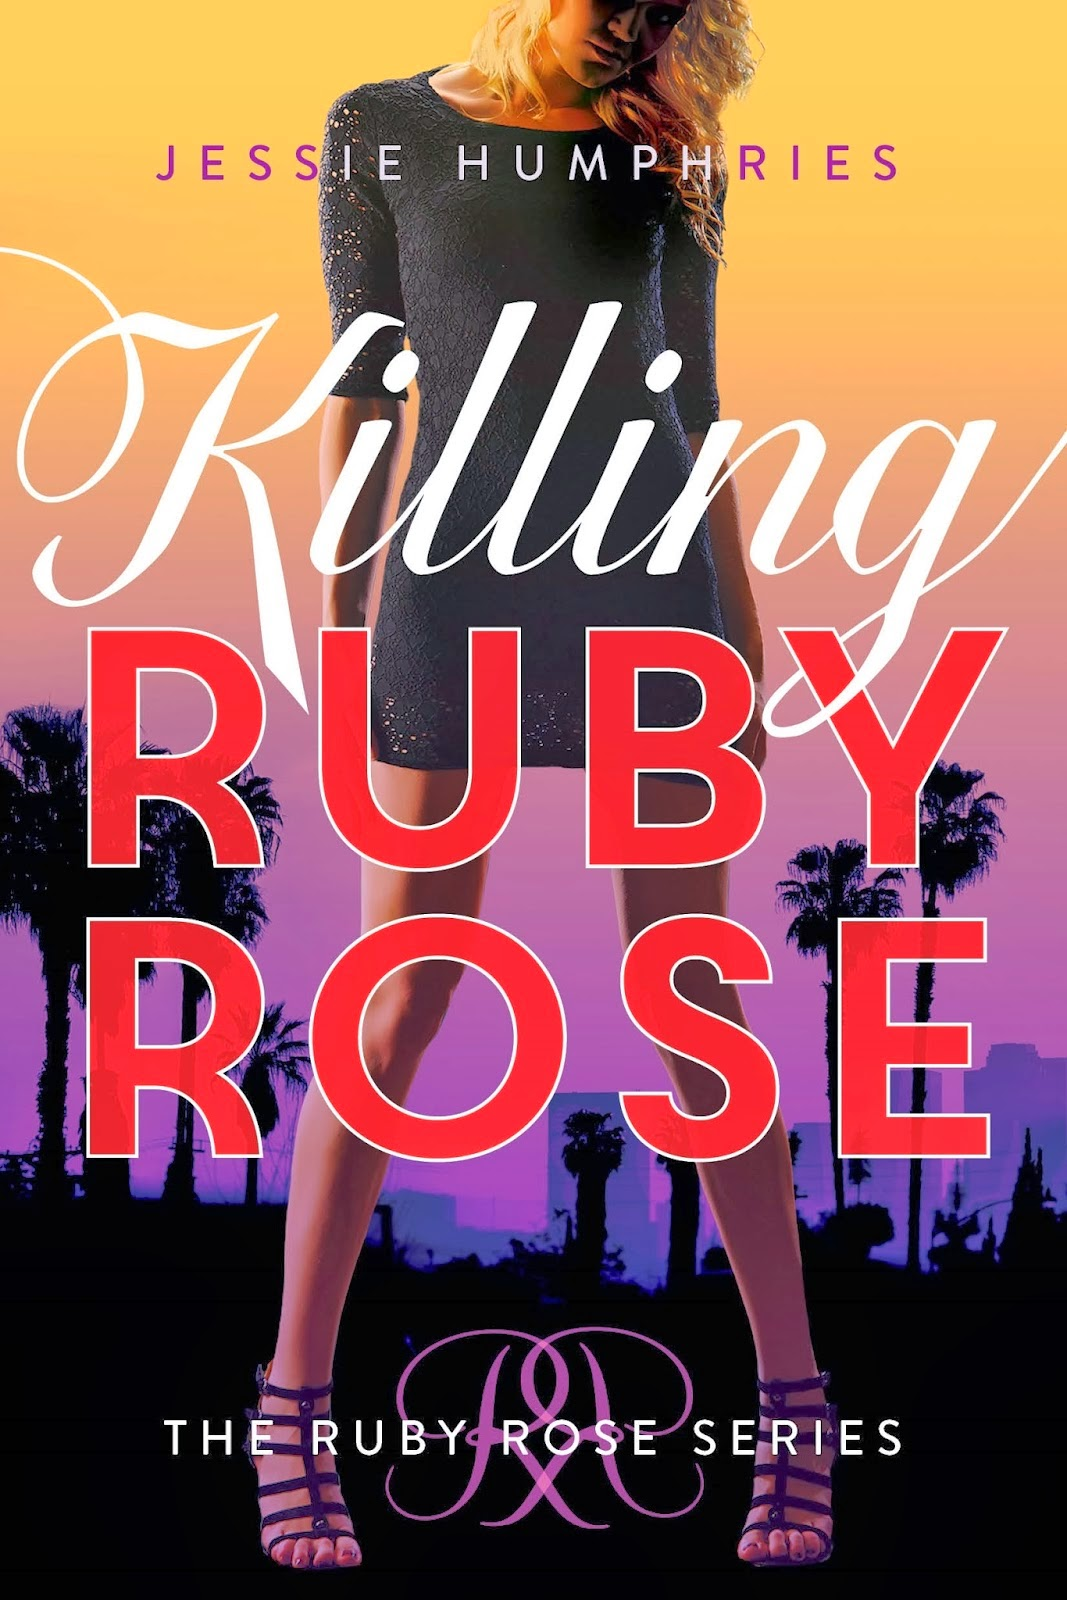 http://www.amazon.com/Killing-Ruby-Rose-The-Series/dp/147782006X/ref=sr_1_1?ie=UTF8&qid=1399257744&sr=8-1&keywords=killing+ruby+rose